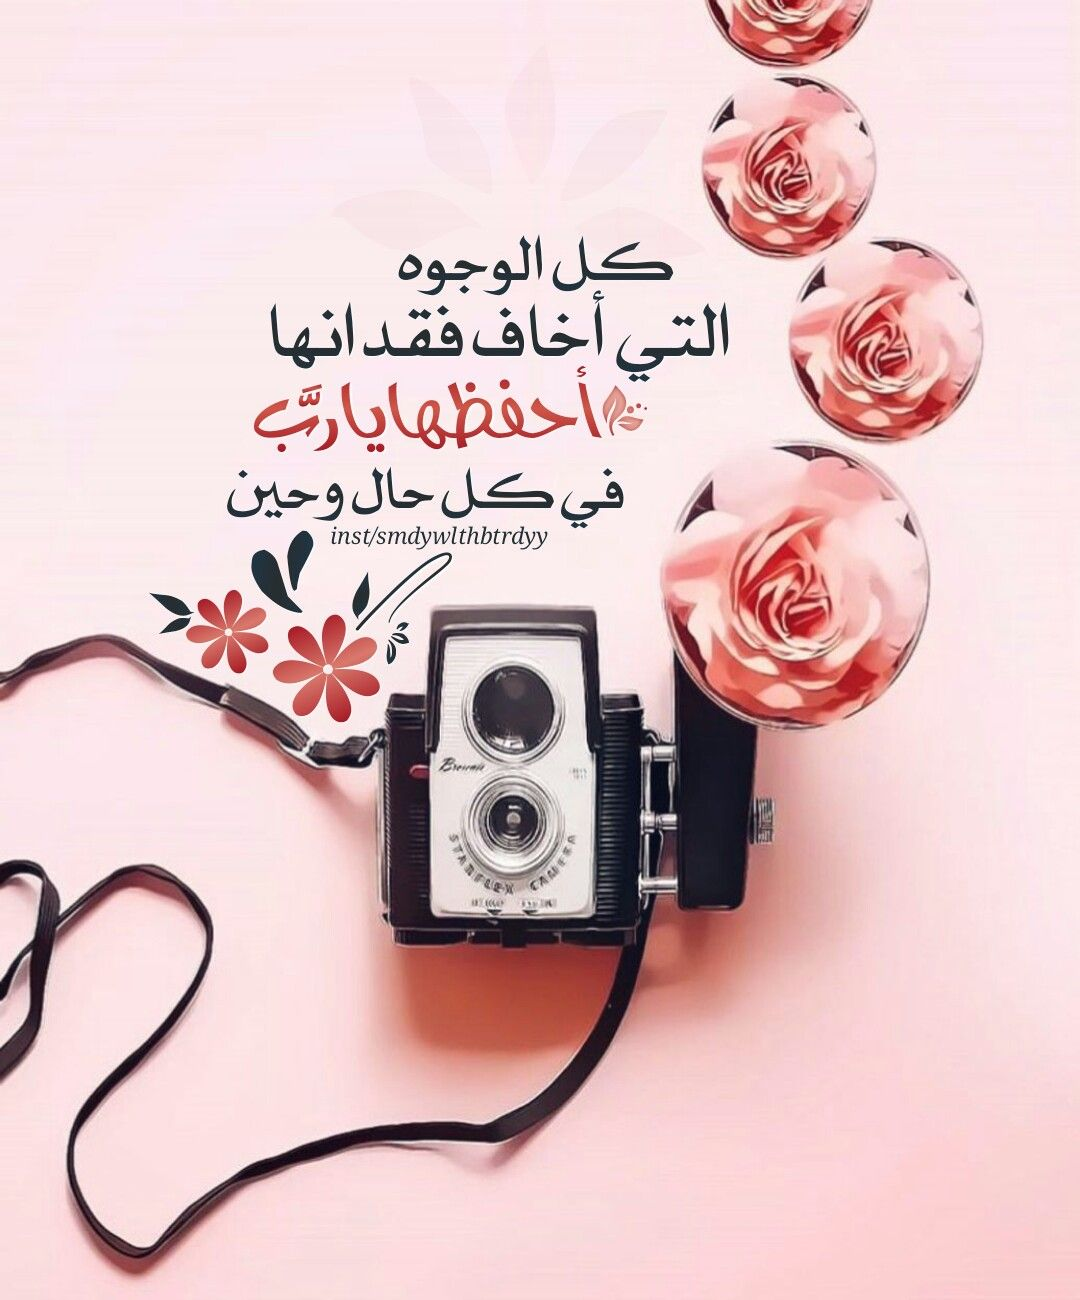 Pin By Um Ahmad On الصباح والمساء In 2020 Cool Words Islamic Pictures Ted Baker Icon Bag